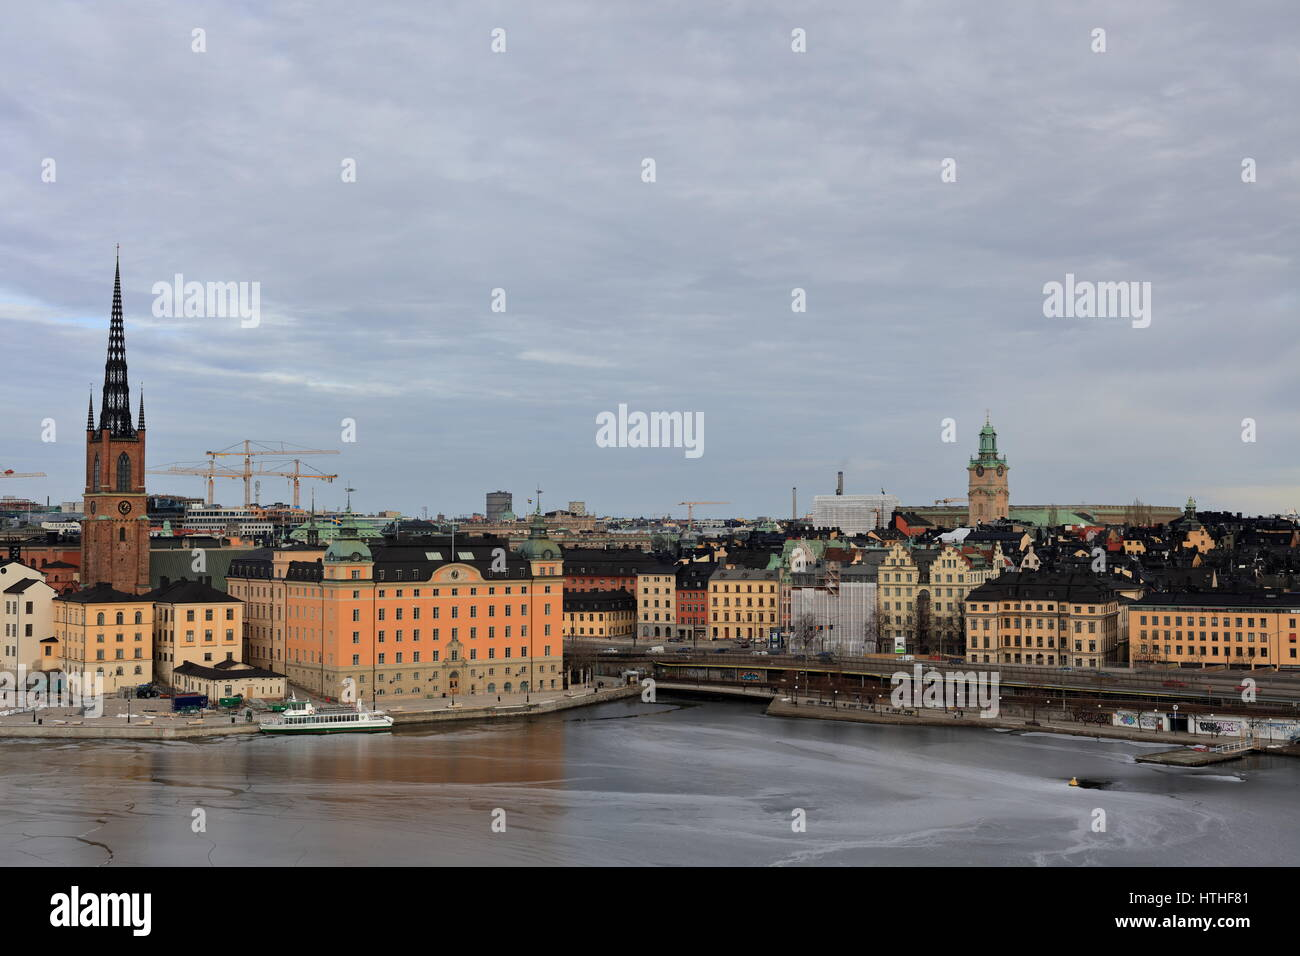 Stockholm in early spring with partially frozen sea, taken from Södermalm - Stock Image